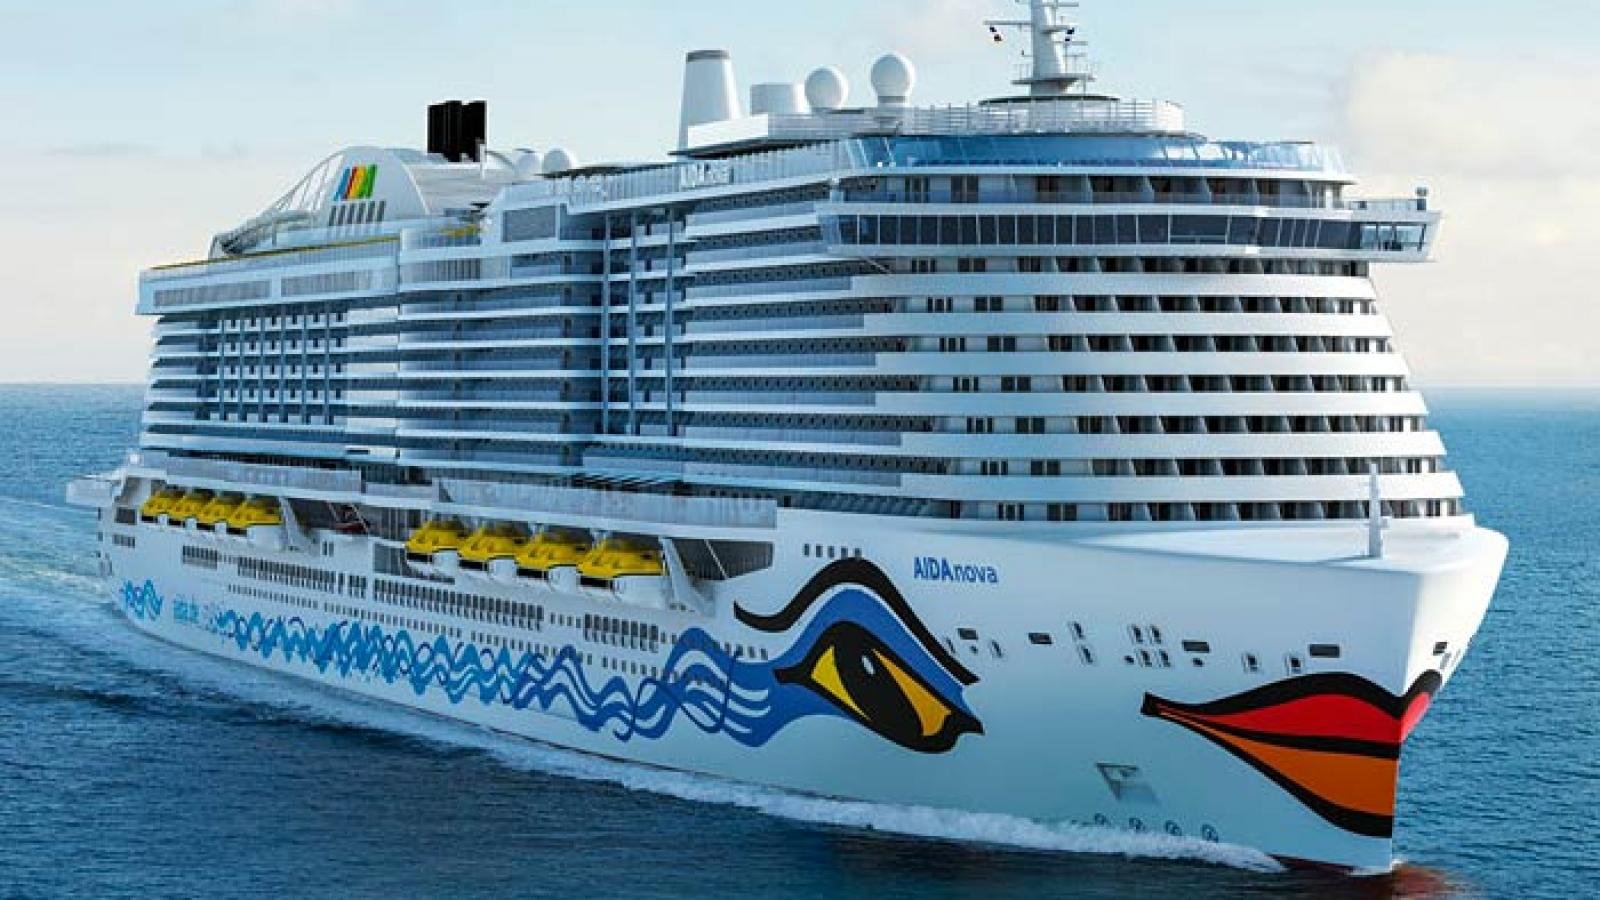 AIDAnova Cruise Ship